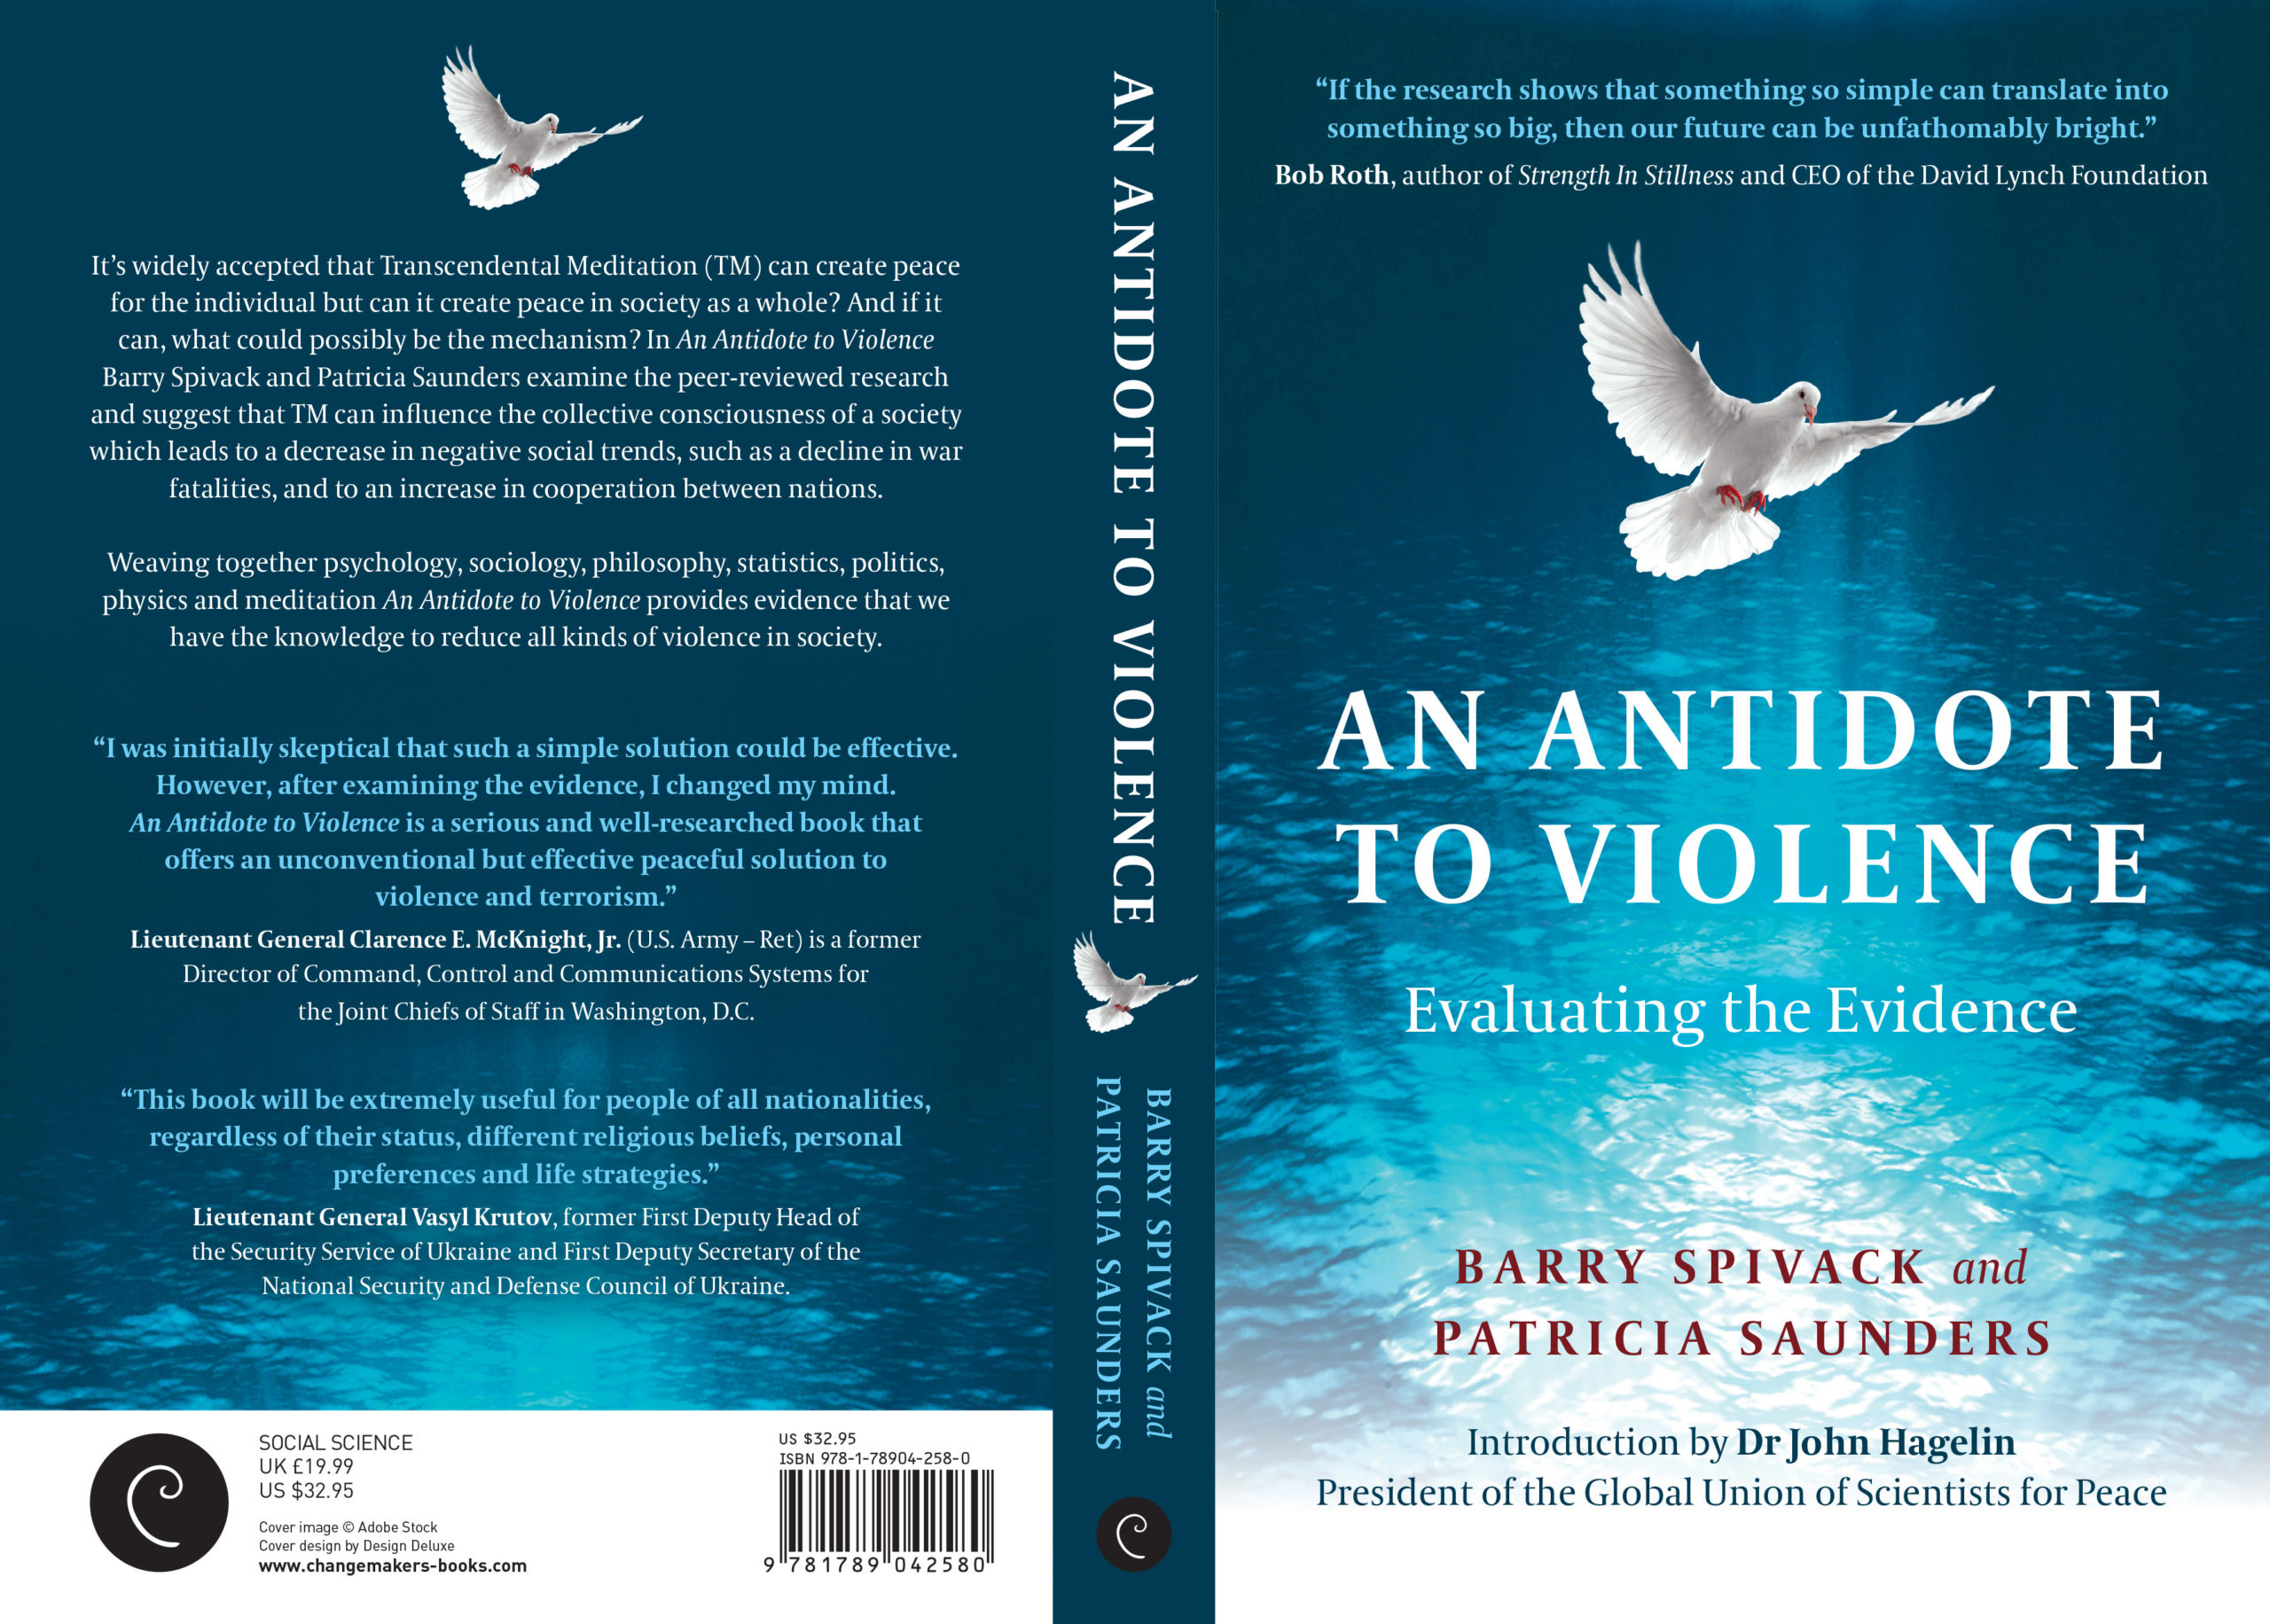 An Antidote to Violence - Front and Back